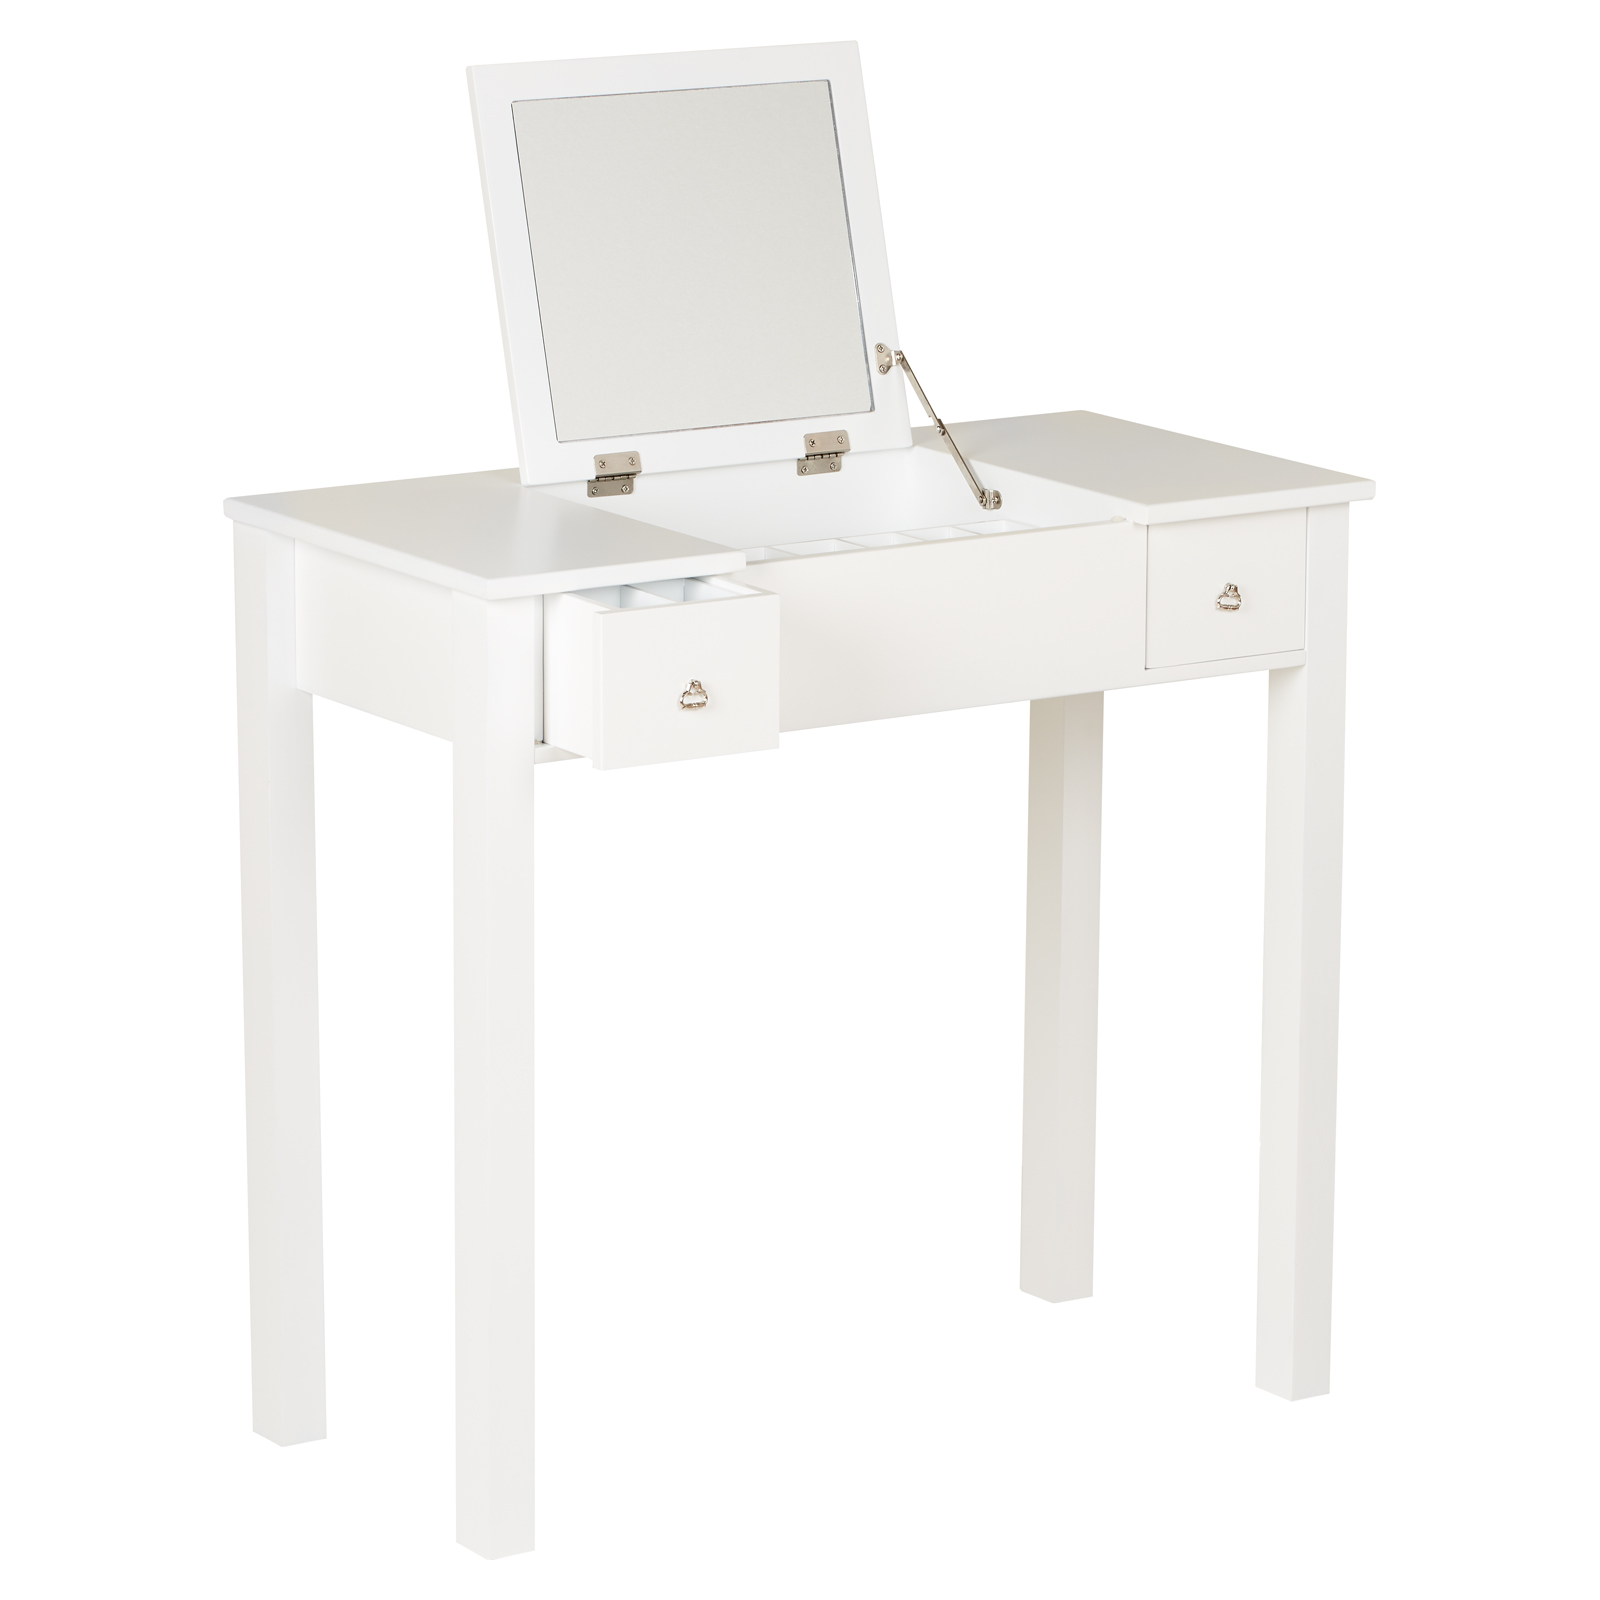 Tremendous White Makeup Table With Drawers Saubhaya Makeup Pdpeps Interior Chair Design Pdpepsorg